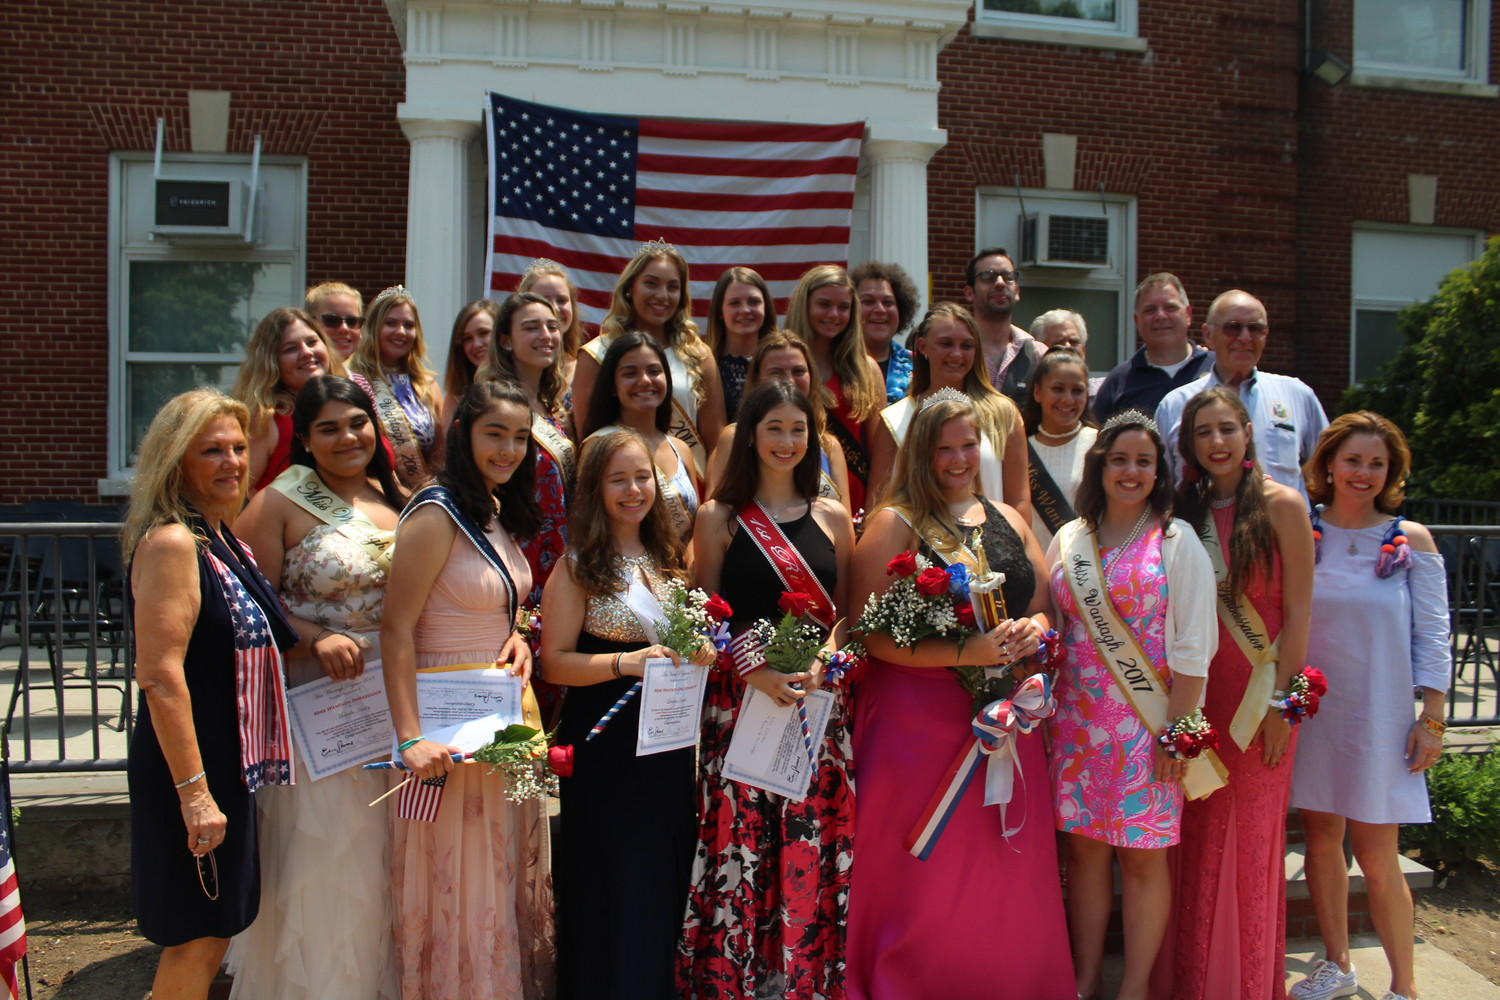 The six 2018 Miss Wantagh finalists with pageant organizers, junior and senior court members, former winners and court members, community figures and local politicians after Bailey was crowned Miss Wantagh.